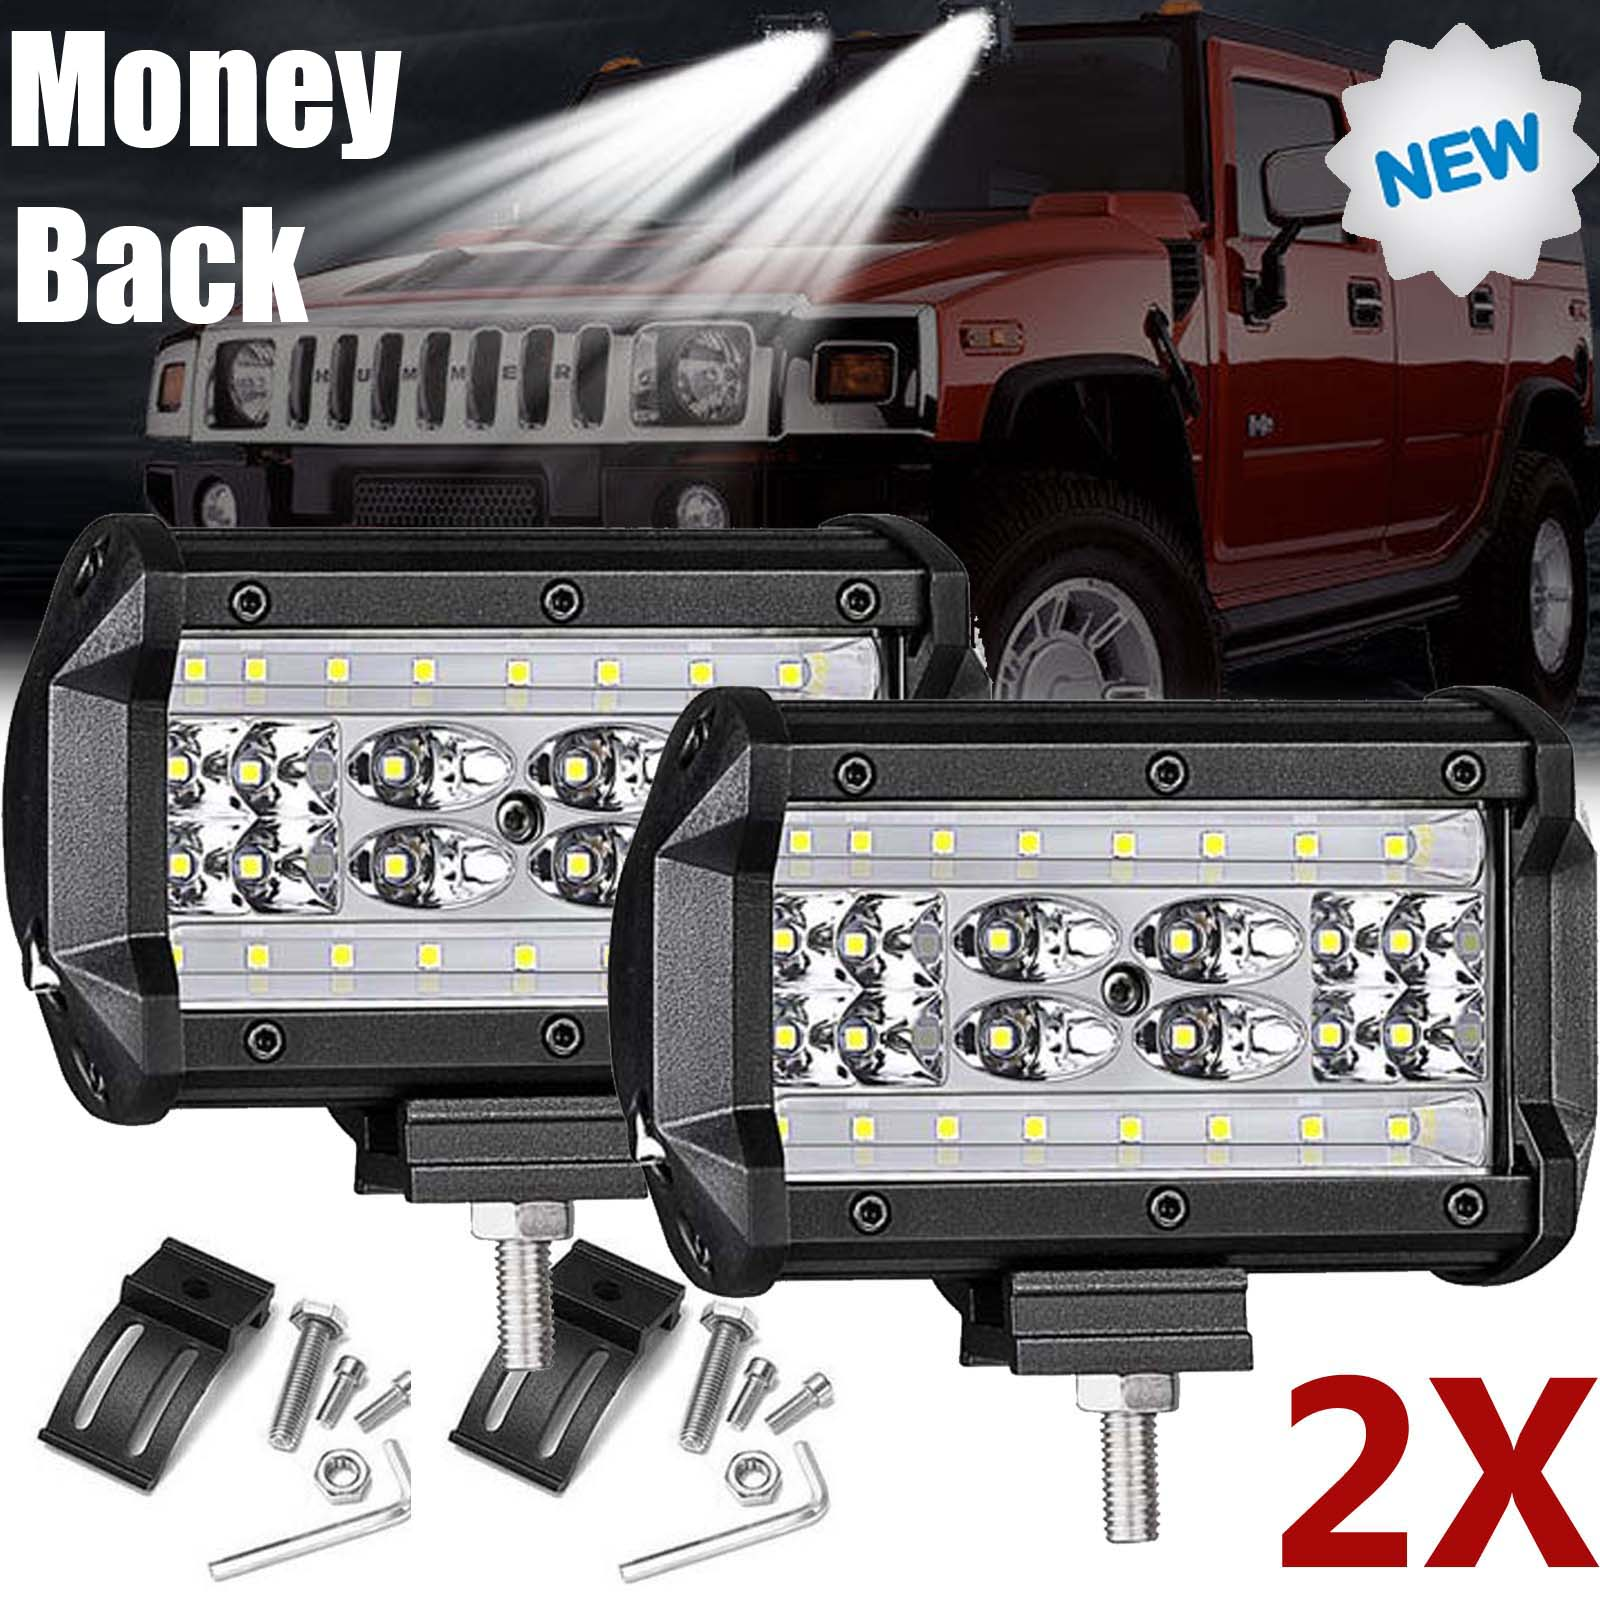 """12/"""" 72W LED Work Light Bar Offroad Driving Lamp SUV Car Boat 4WD"""